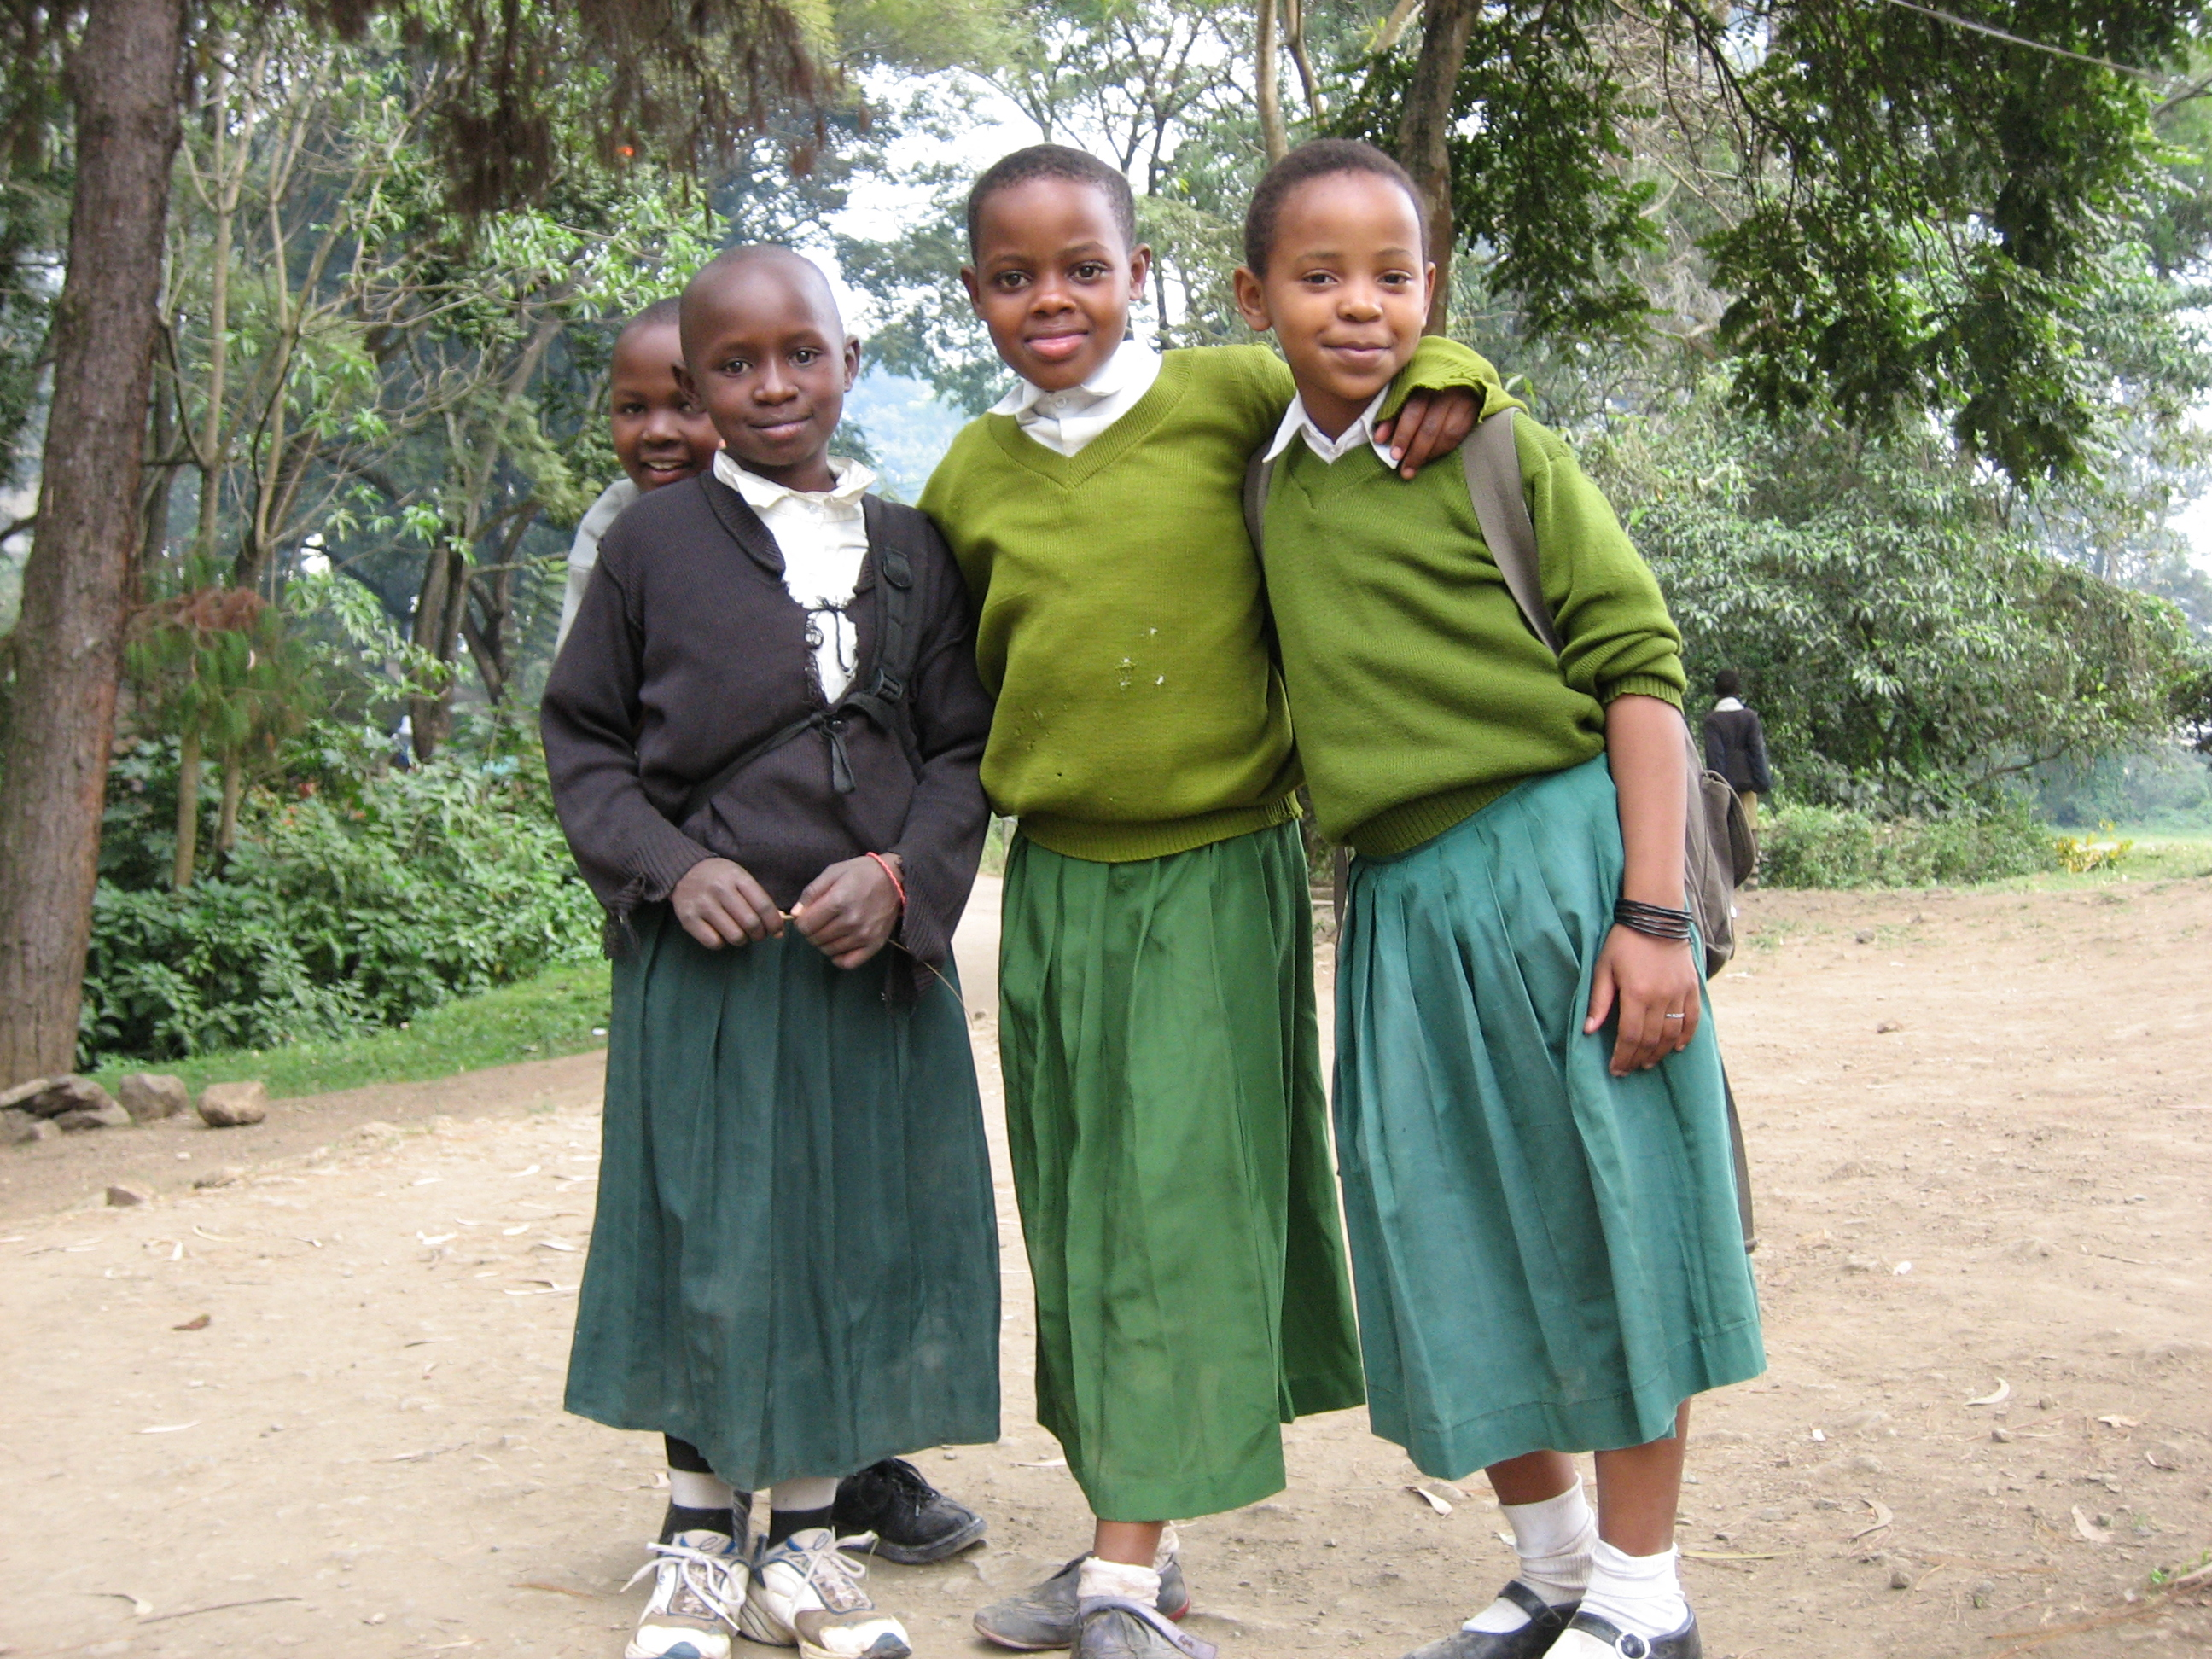 Description school kids in tanzania